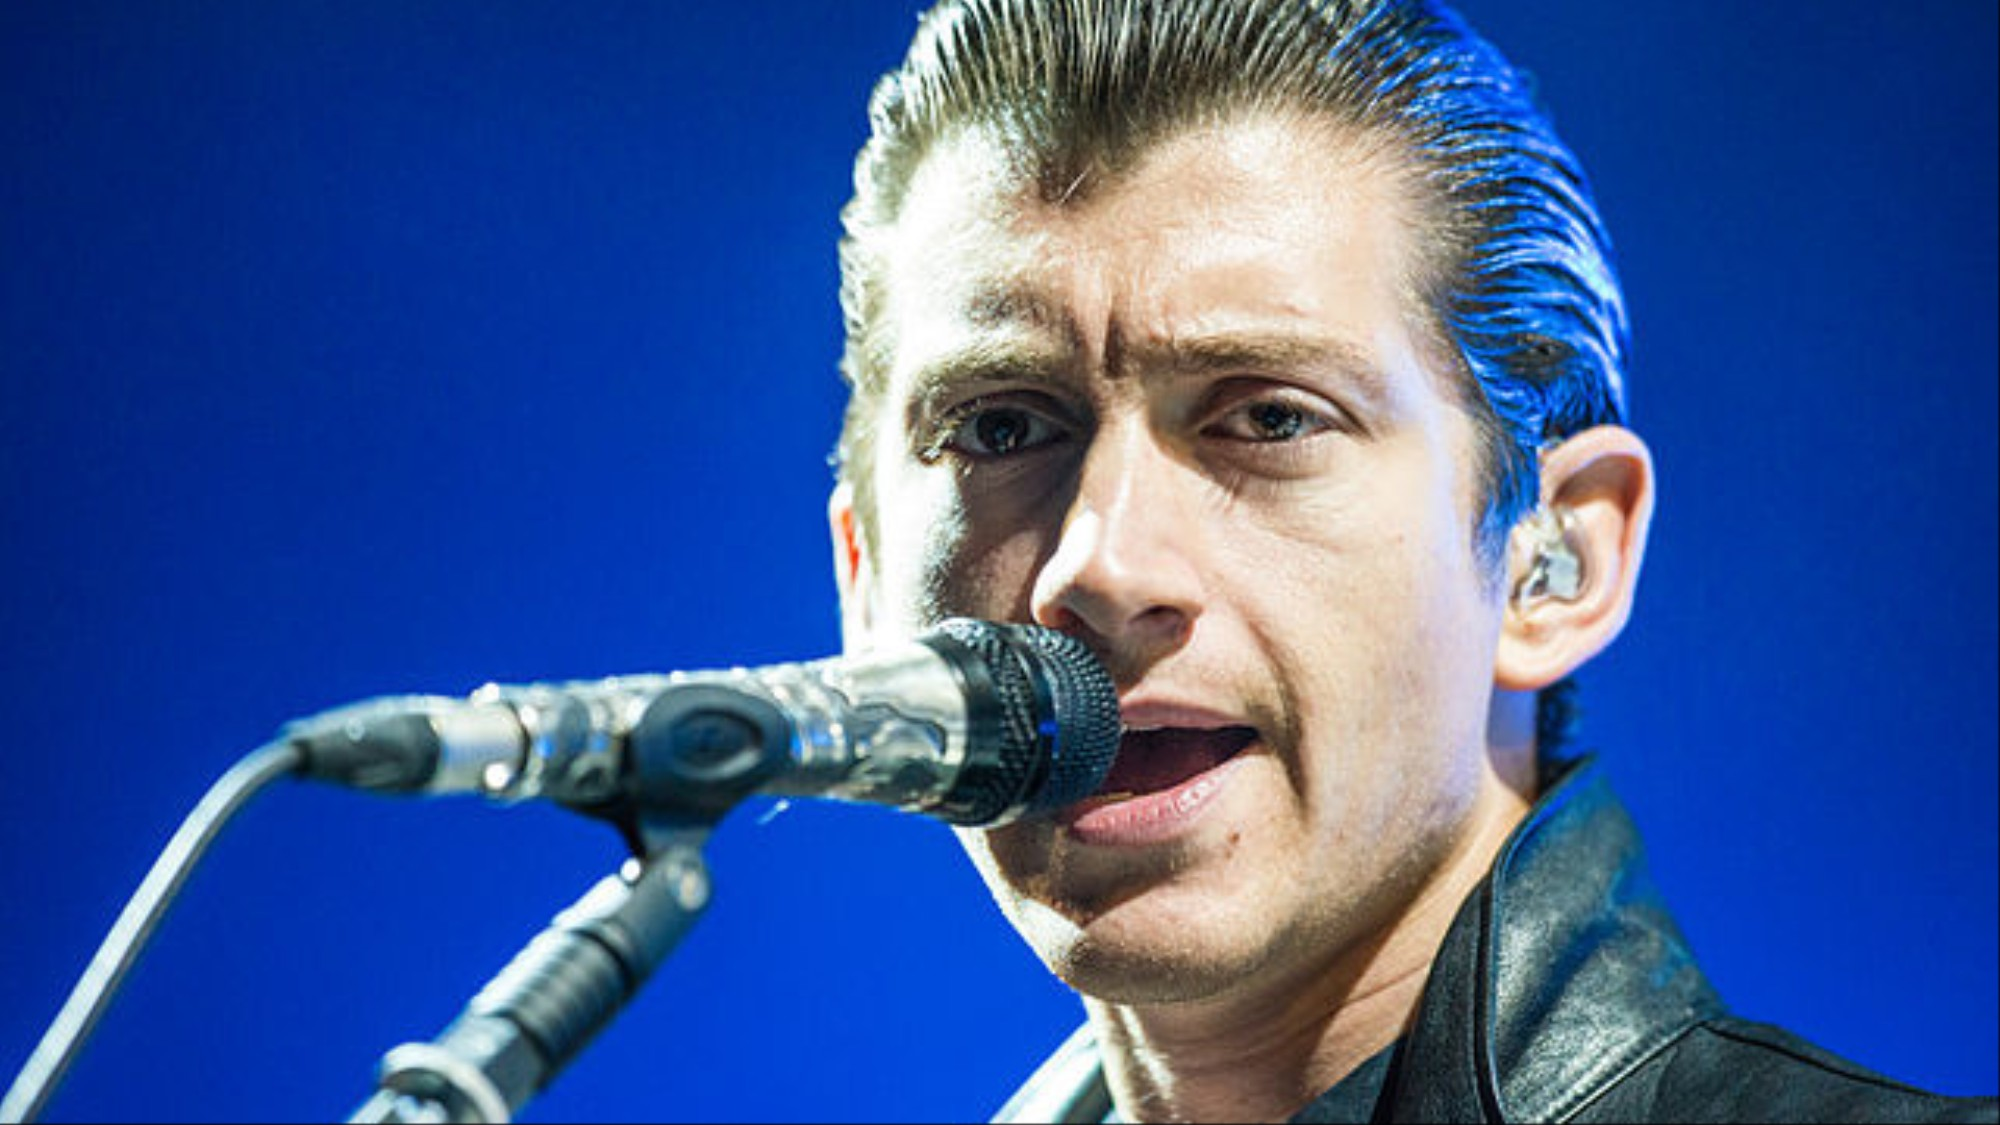 We Asked a Linguist Why Alex Turner Now Sounds Like an Old Cowboy - VICE